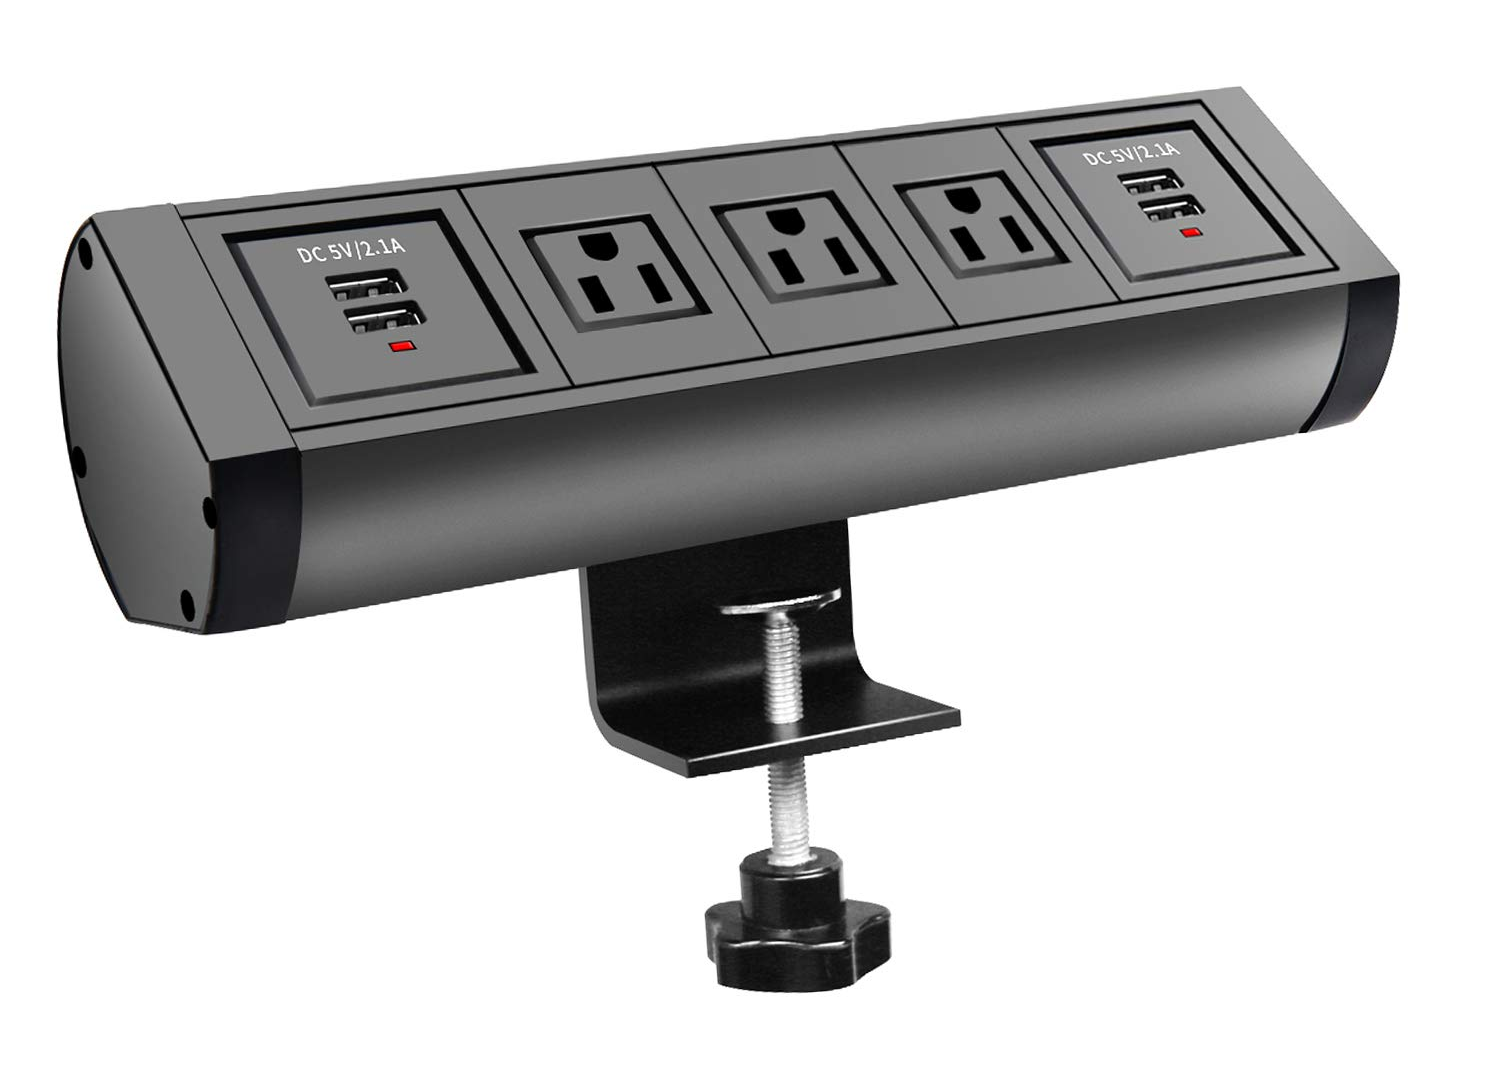 This handy design sticks three outlets and four USB chargers on your desktop.